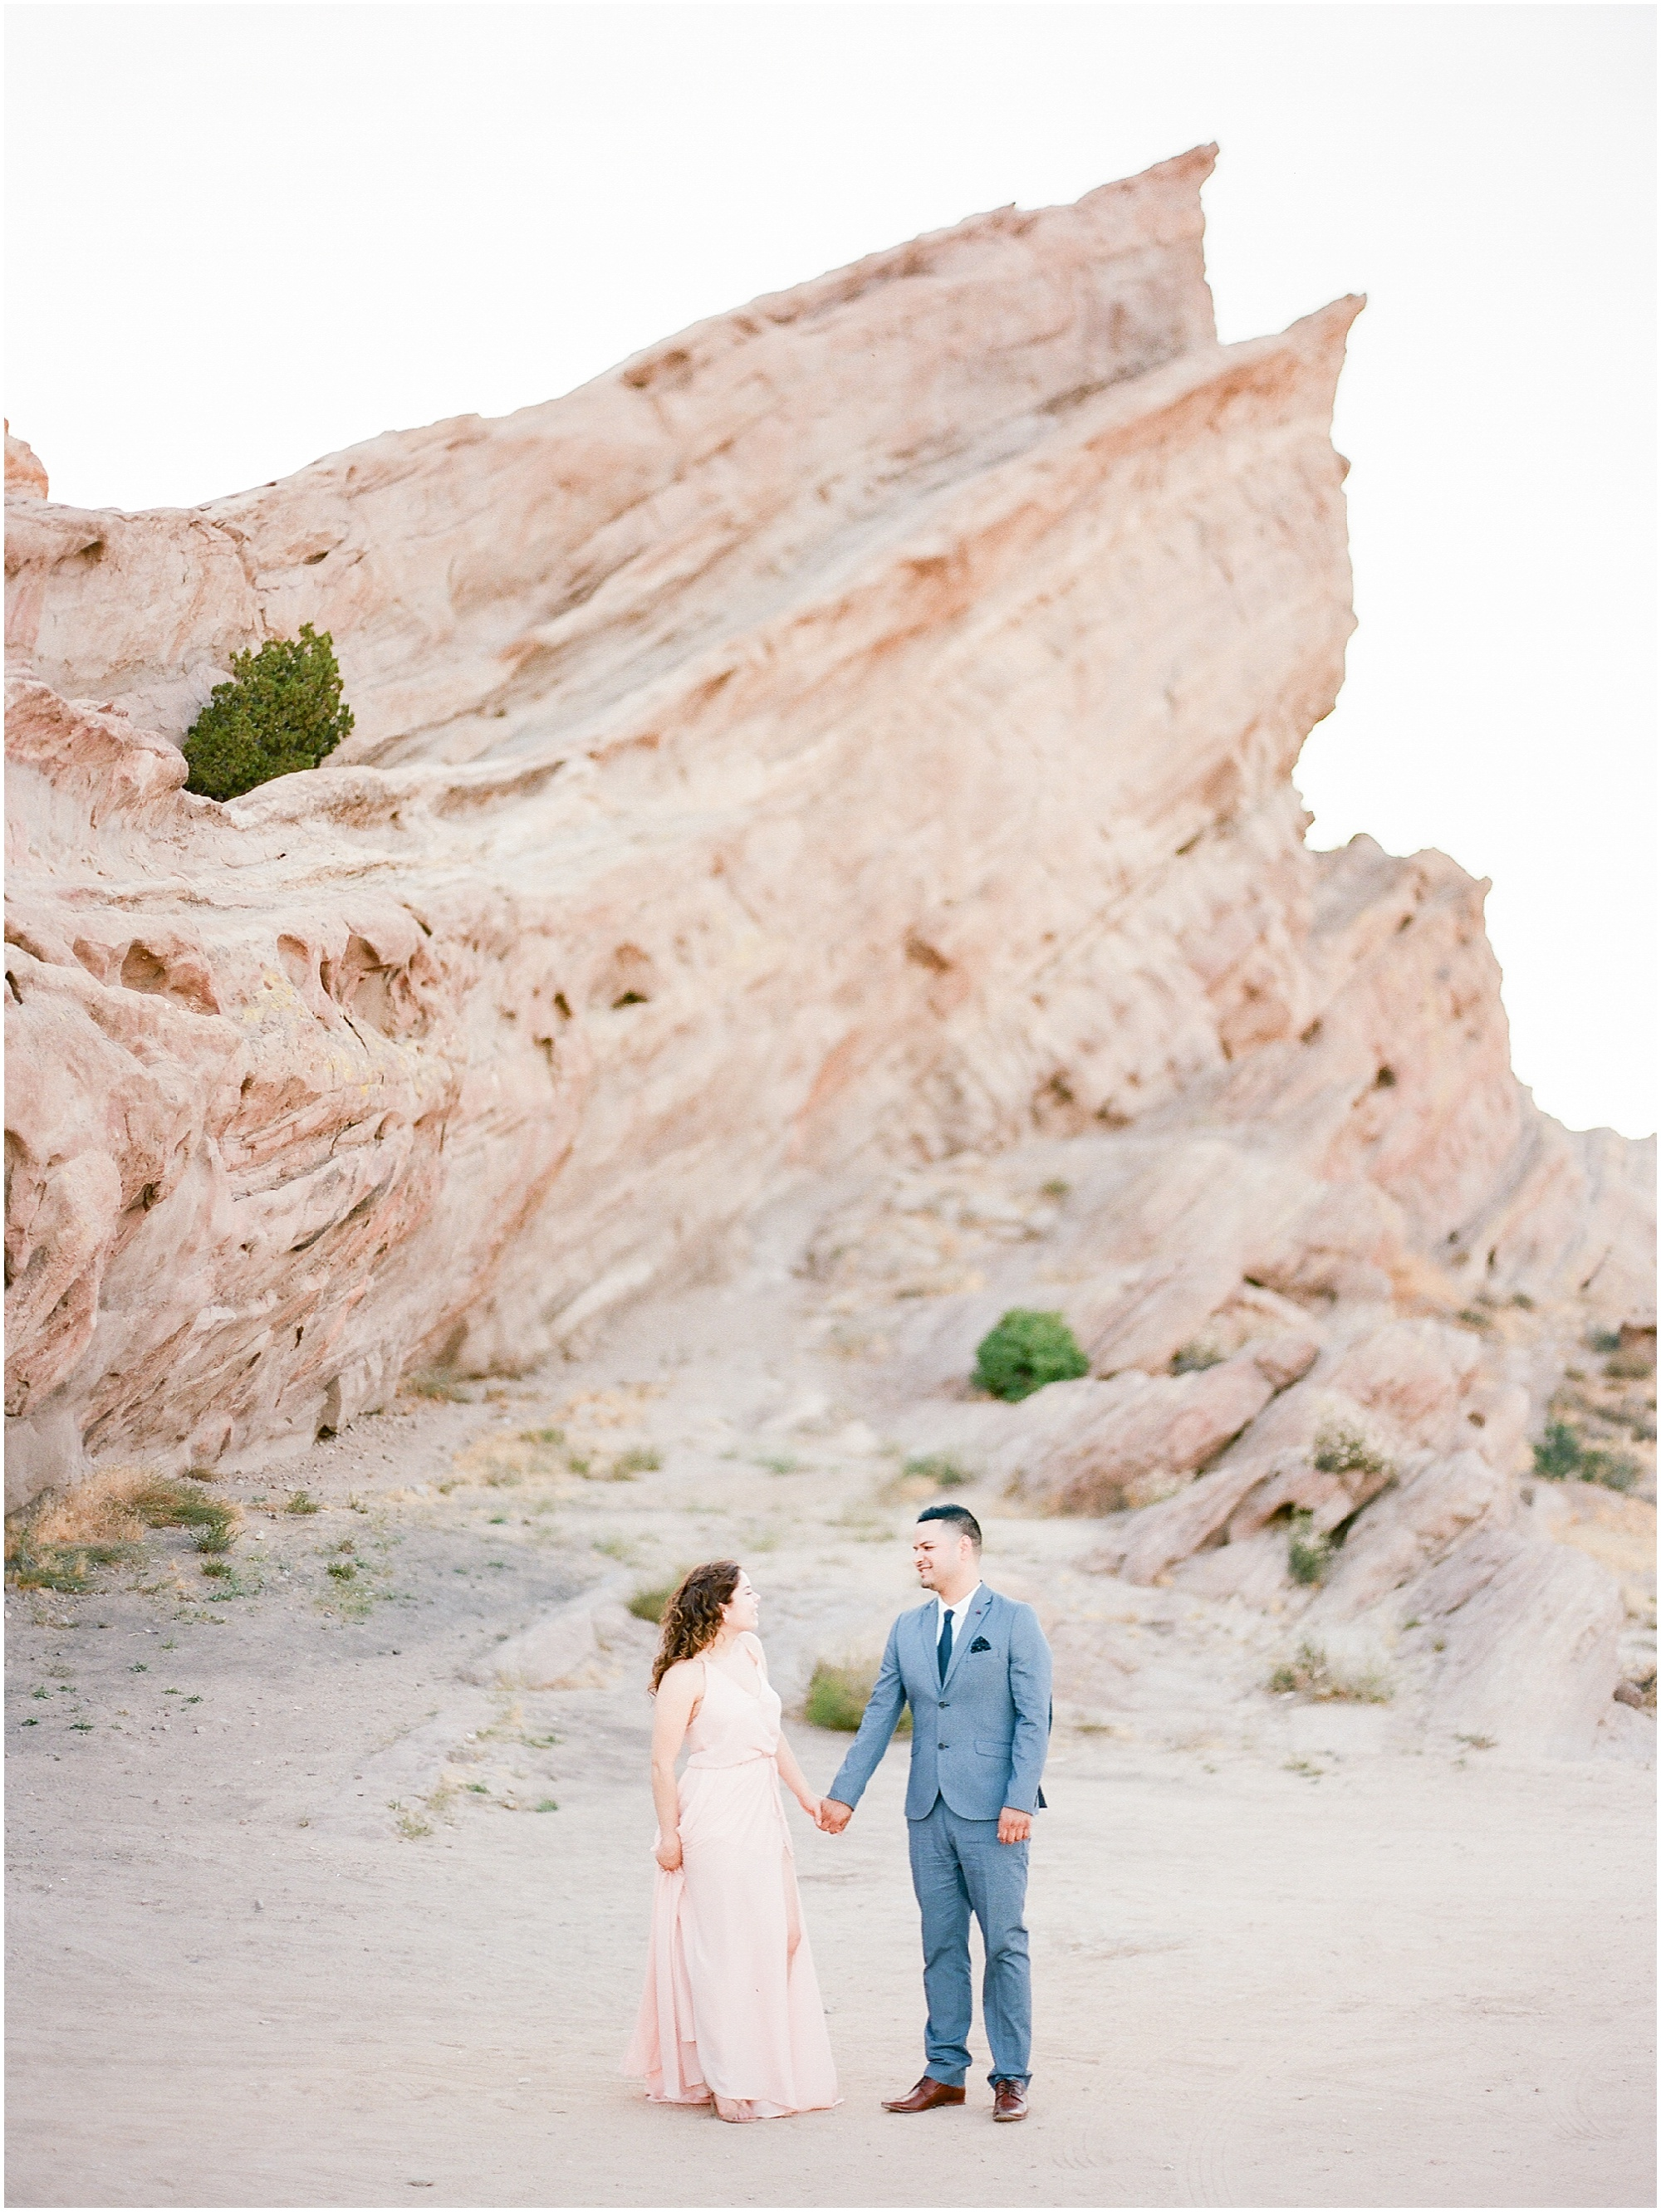 Vasquez-rocks-ca-engagement-session-6.jpg